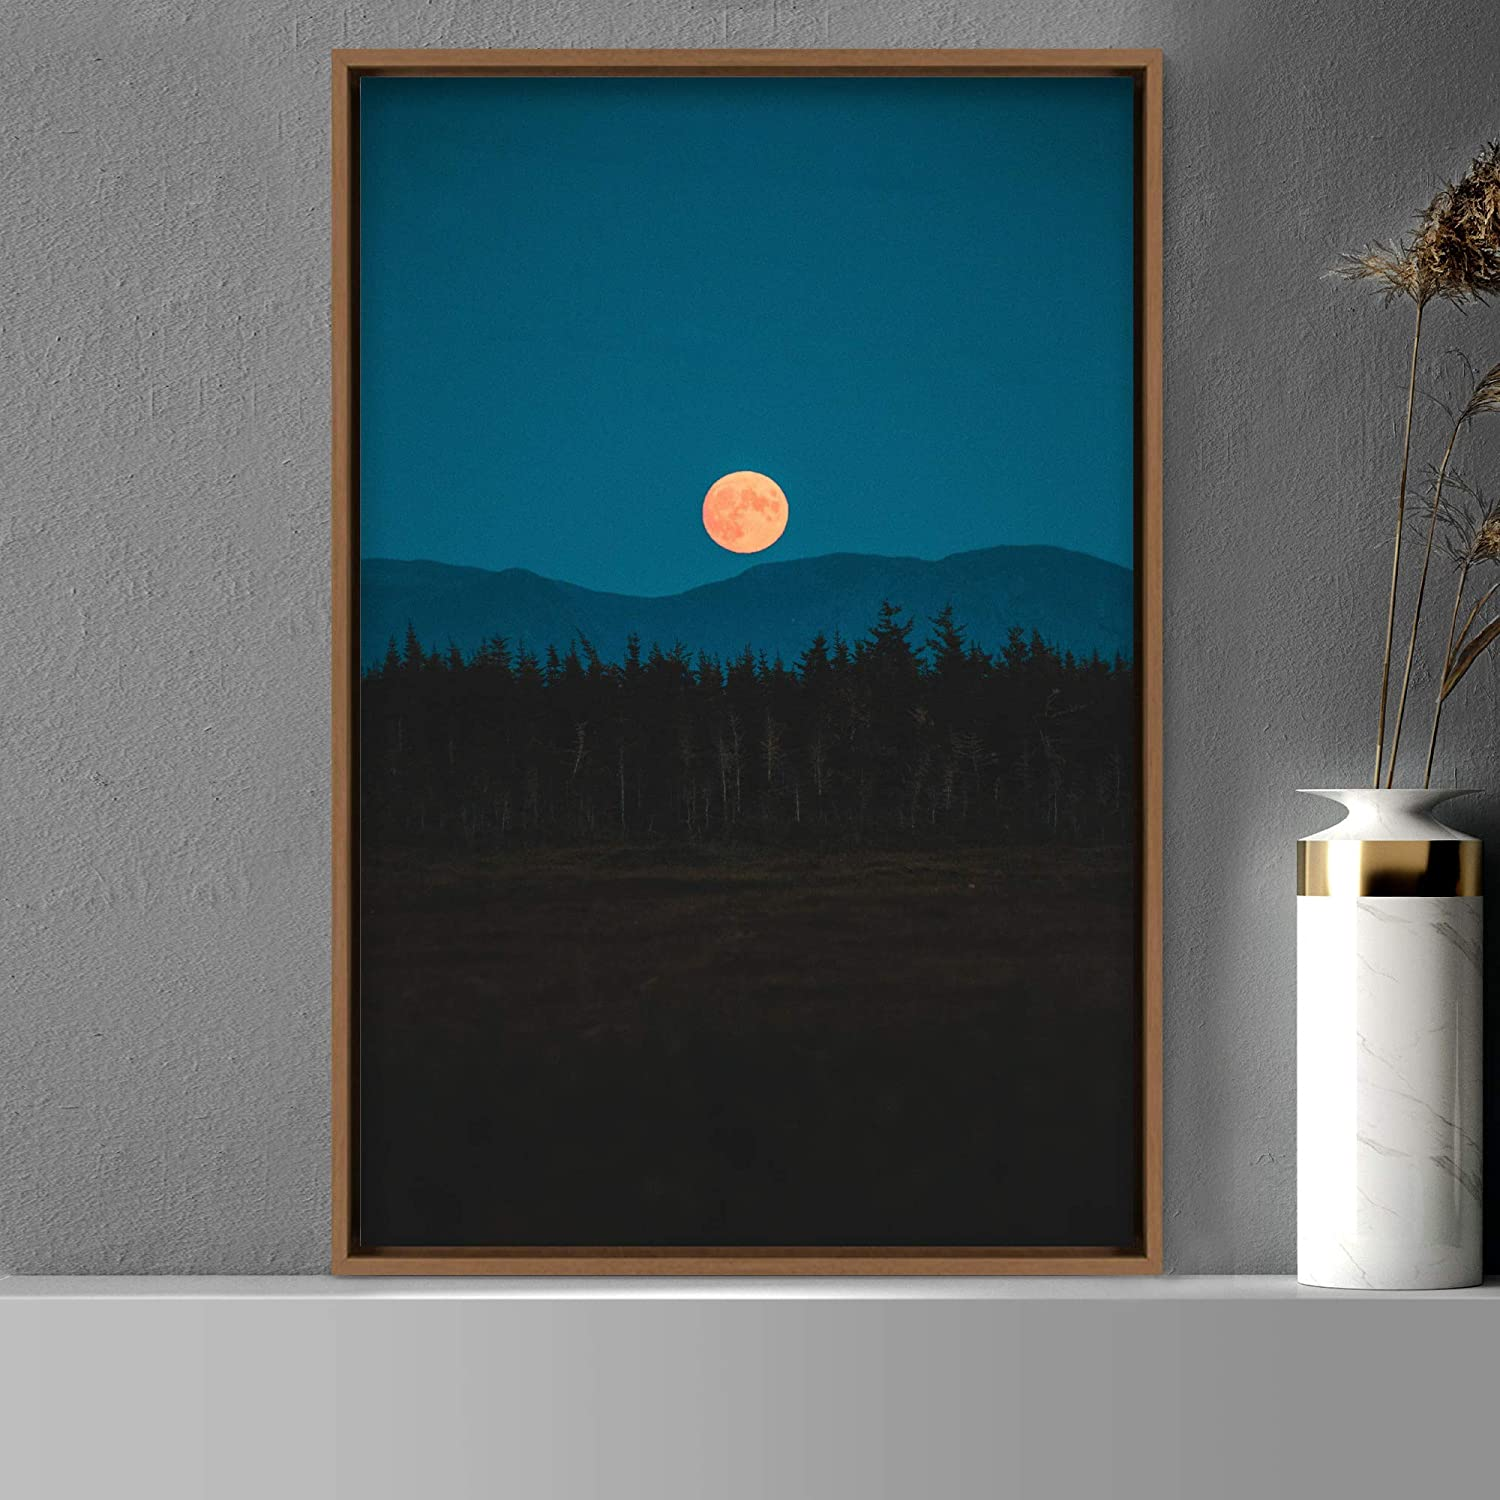 SIGNWIN Framed Canvas Wall Art Space Bedroom Moon 出群 上等 Astronomy Co